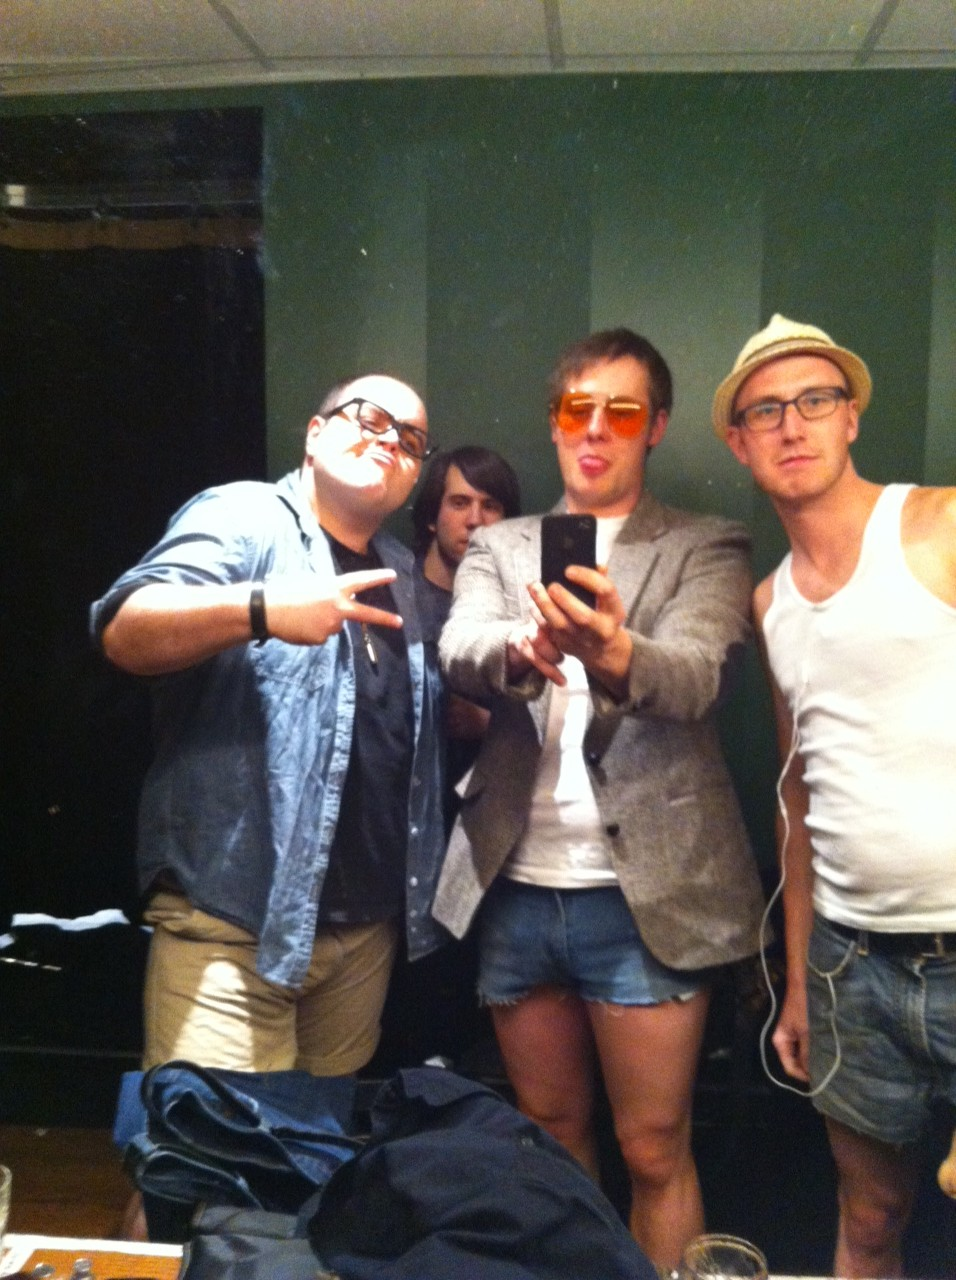 In order: Josh Murray, Eric Miinch and Evan Arppe. Ely Henry is in the background. http://elyhenry.tumblr.com/